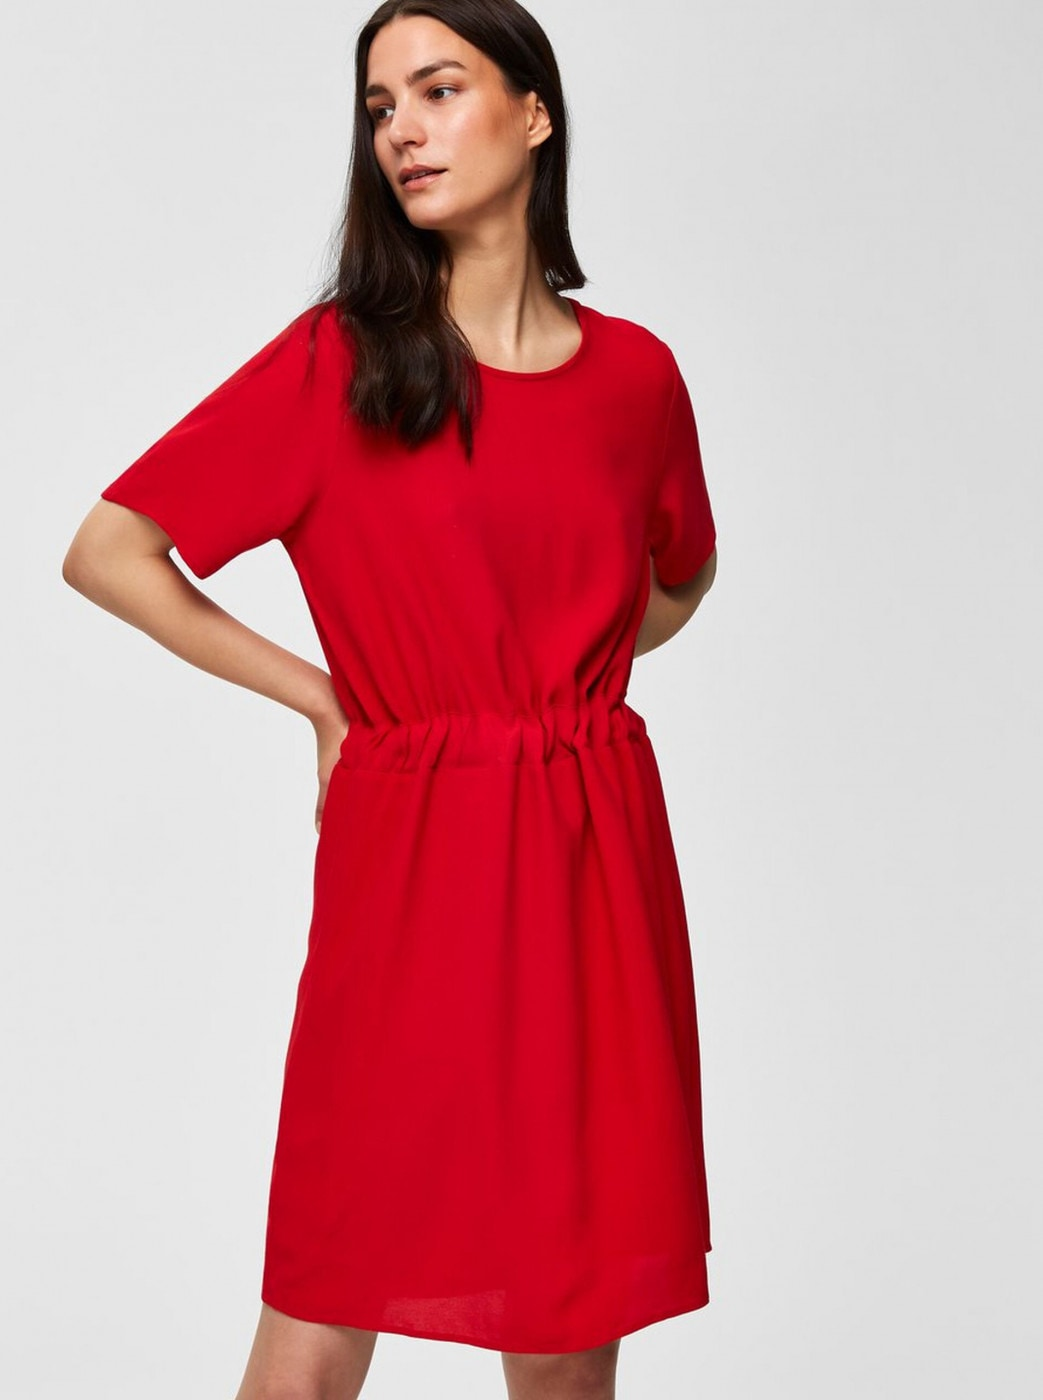 Red Dress Selected Femme Tanna